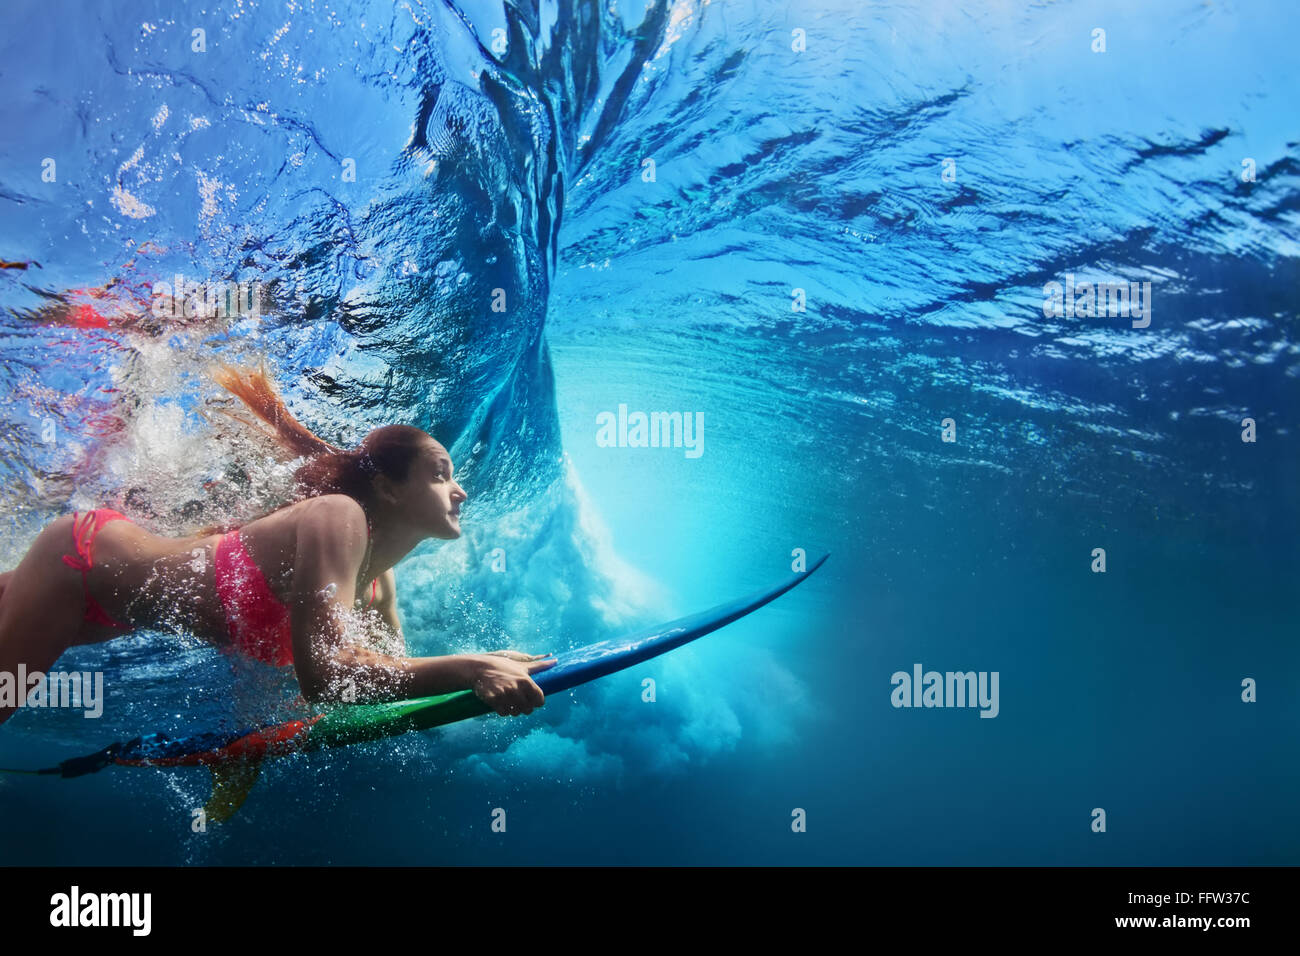 Young girl in bikini - surfer with surf board dive underwater under big ocean wave. - Stock Image